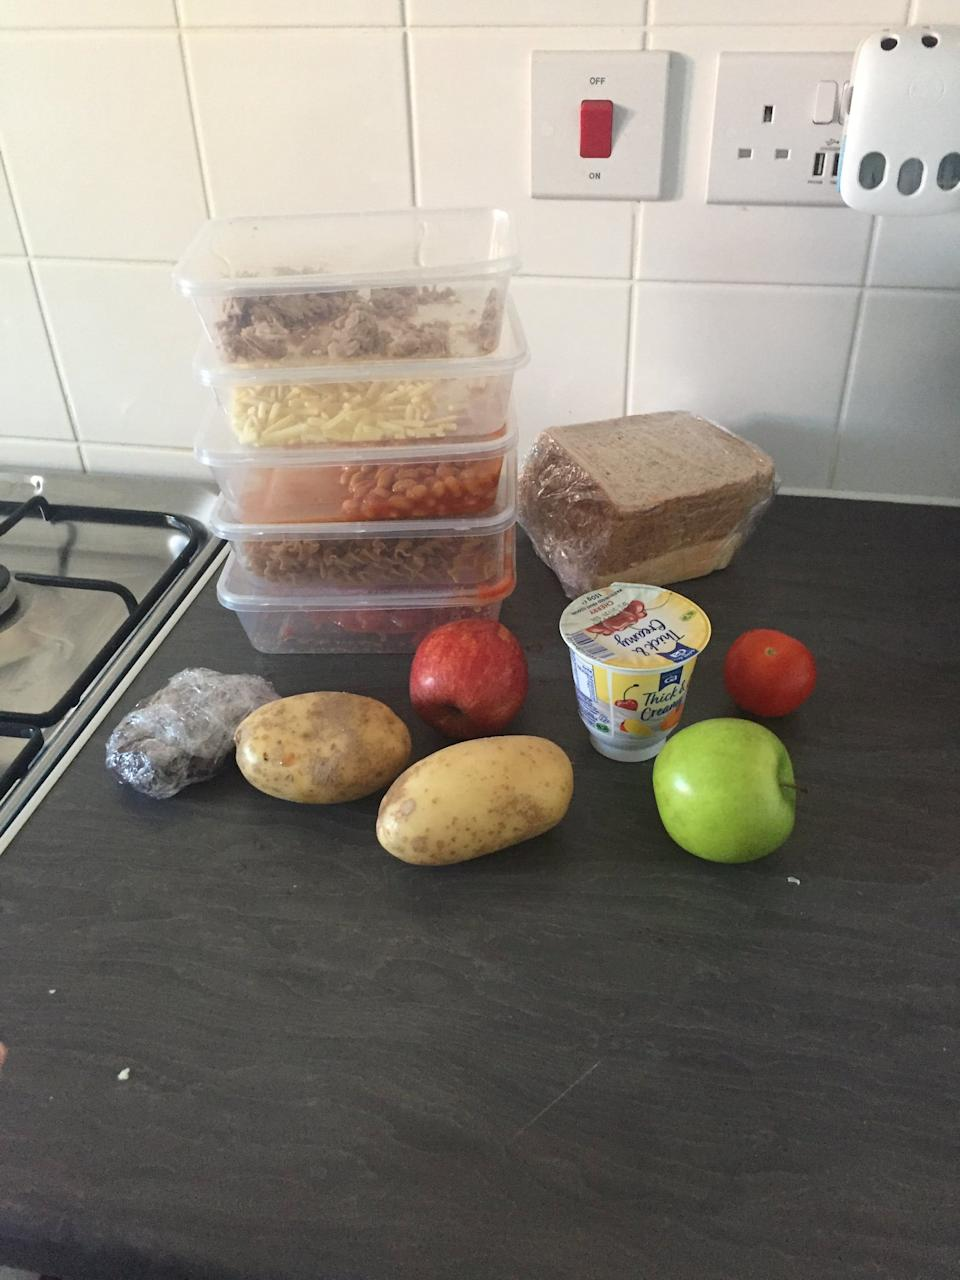 One mum was told how she was forced to throw away the meagre package she got because it contained open fresh food products that weren't refrigerated. (SWNS)